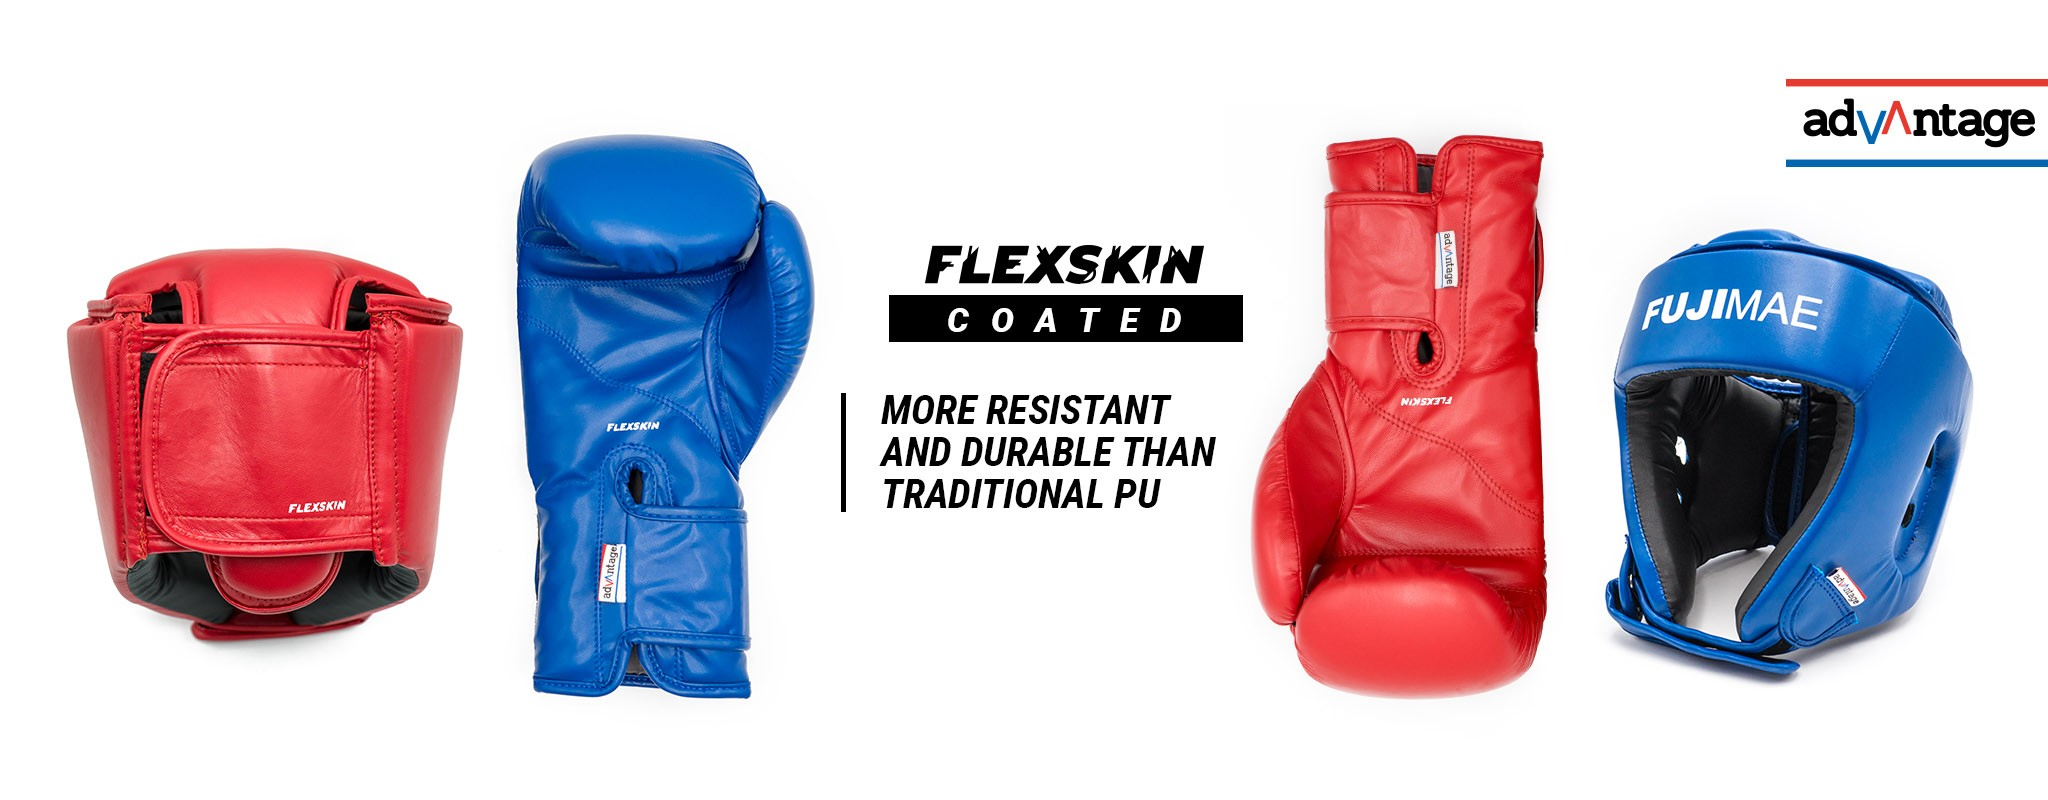 Flexskin Protective Gear. Boxing Gloves and Open Head Guard